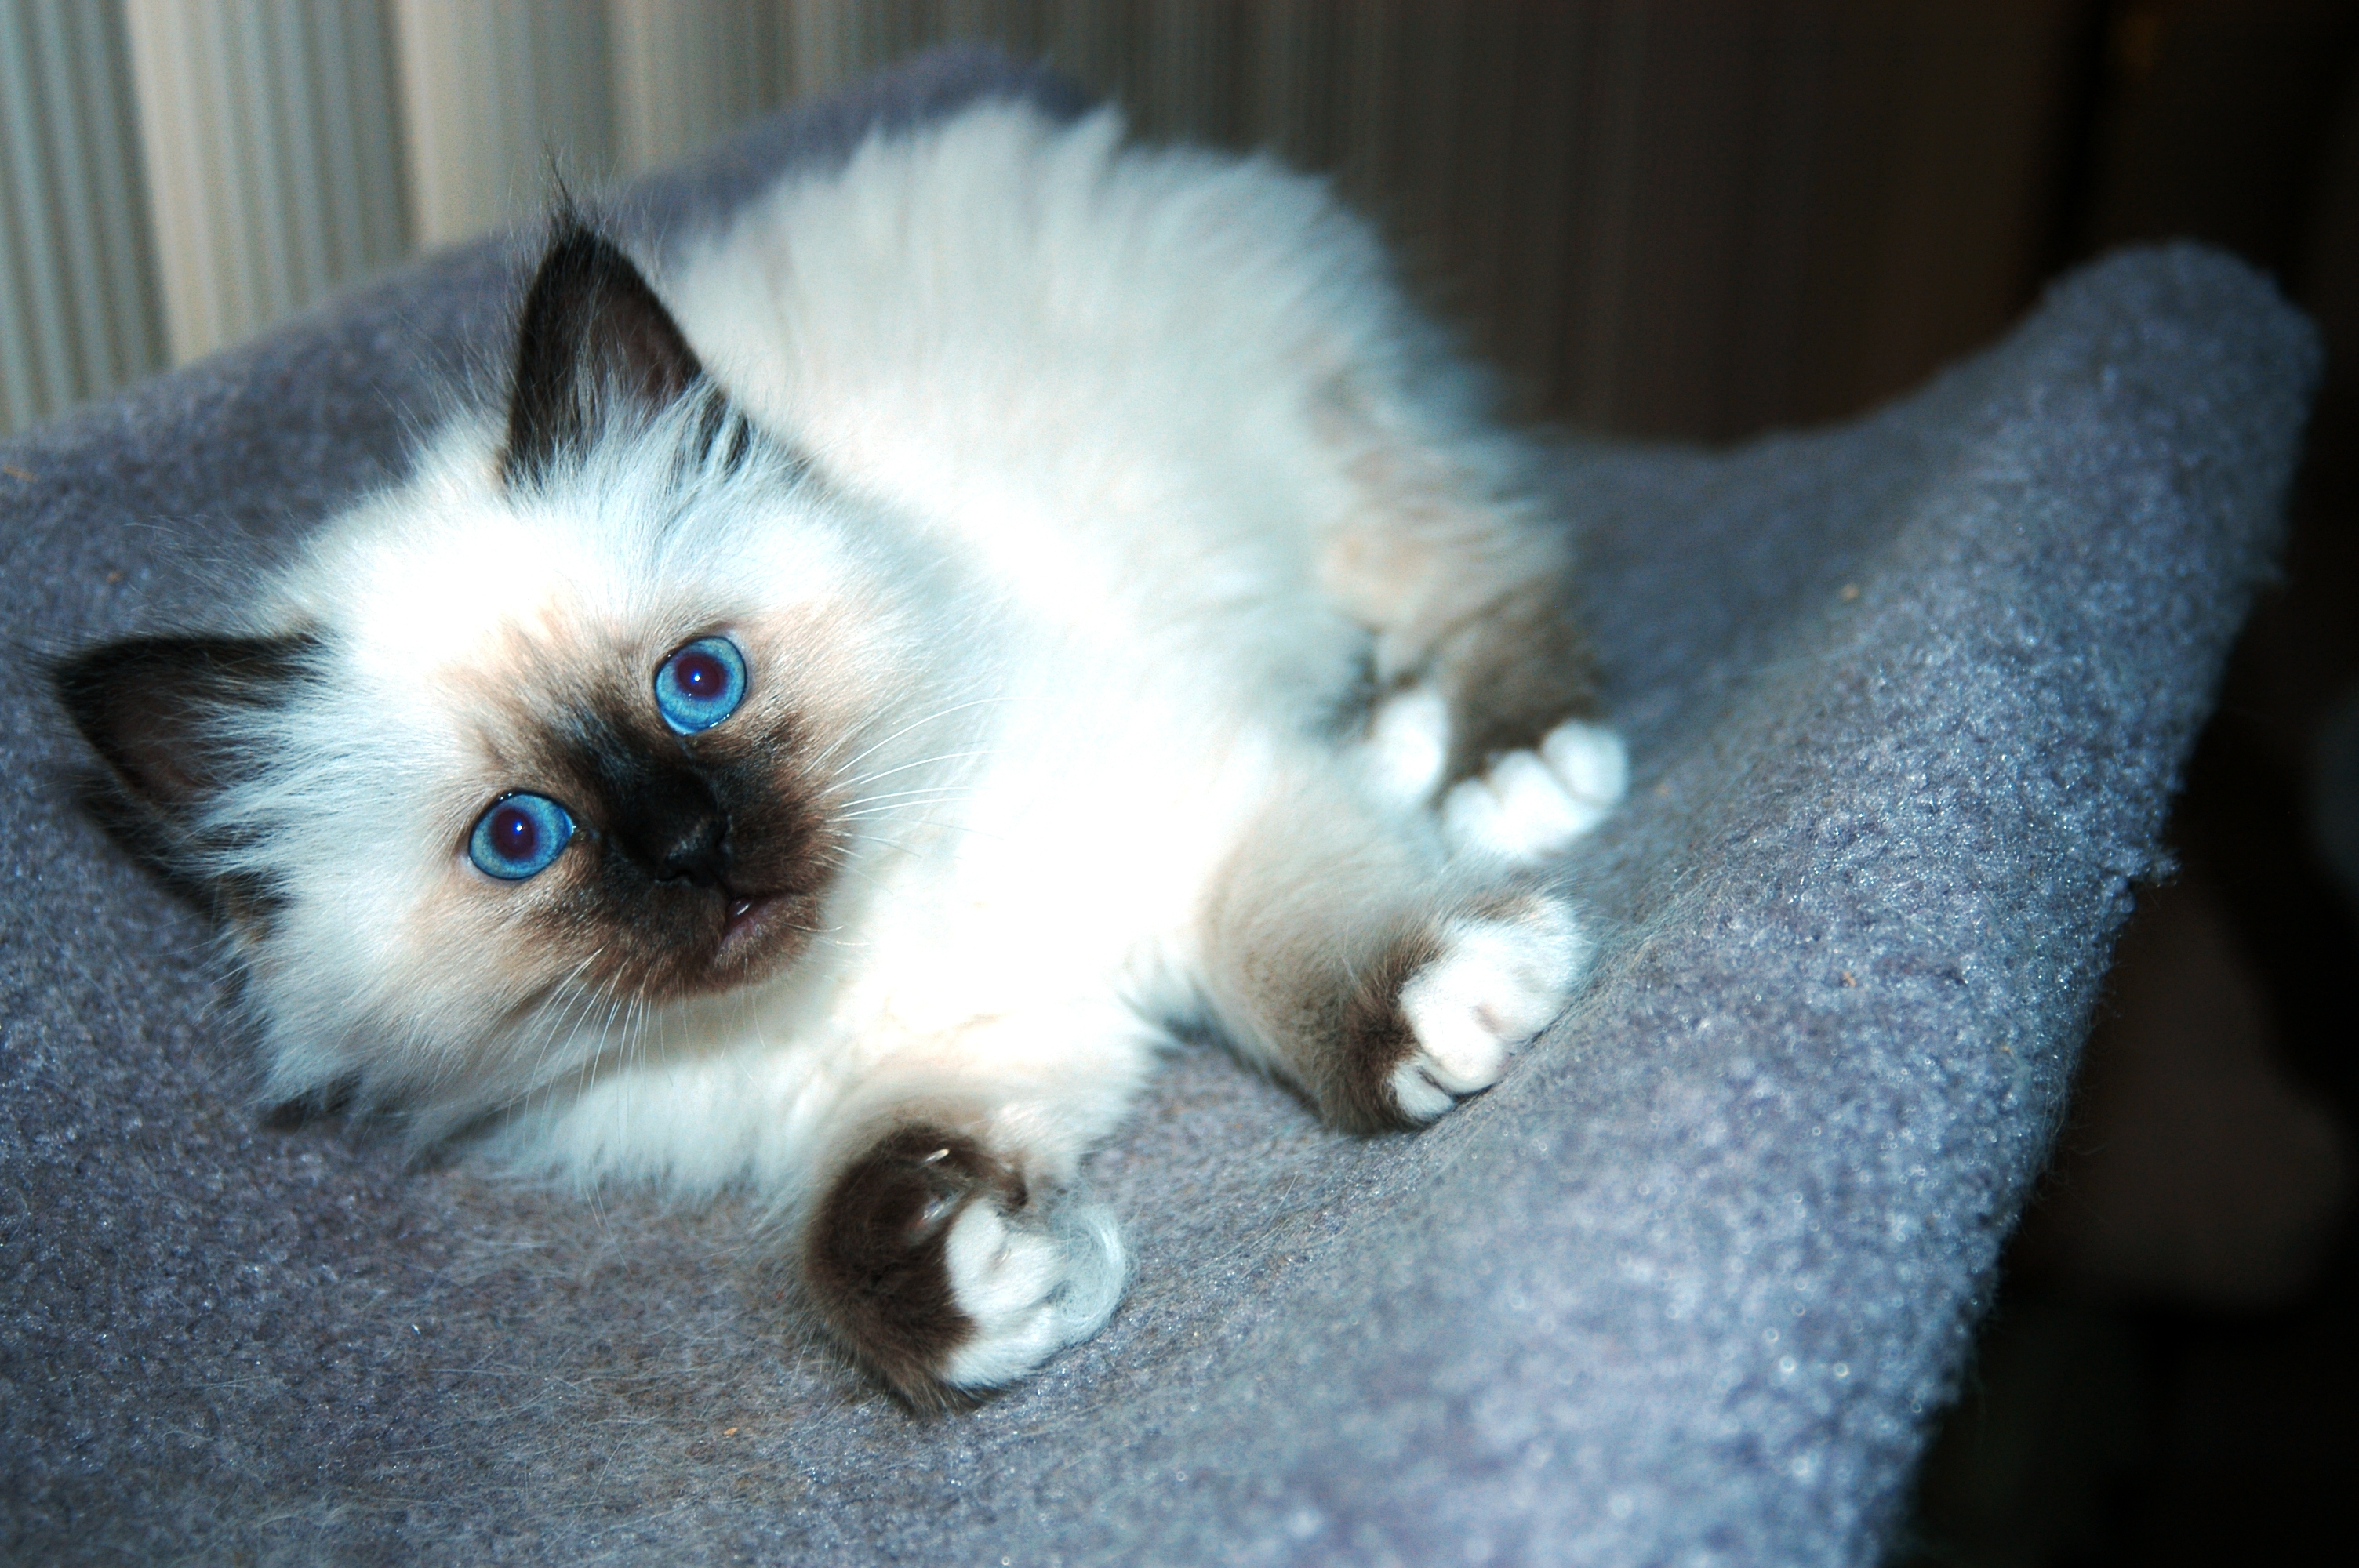 20 Best Of Kittens for Sale In Ri | Kittens cute wallpapers